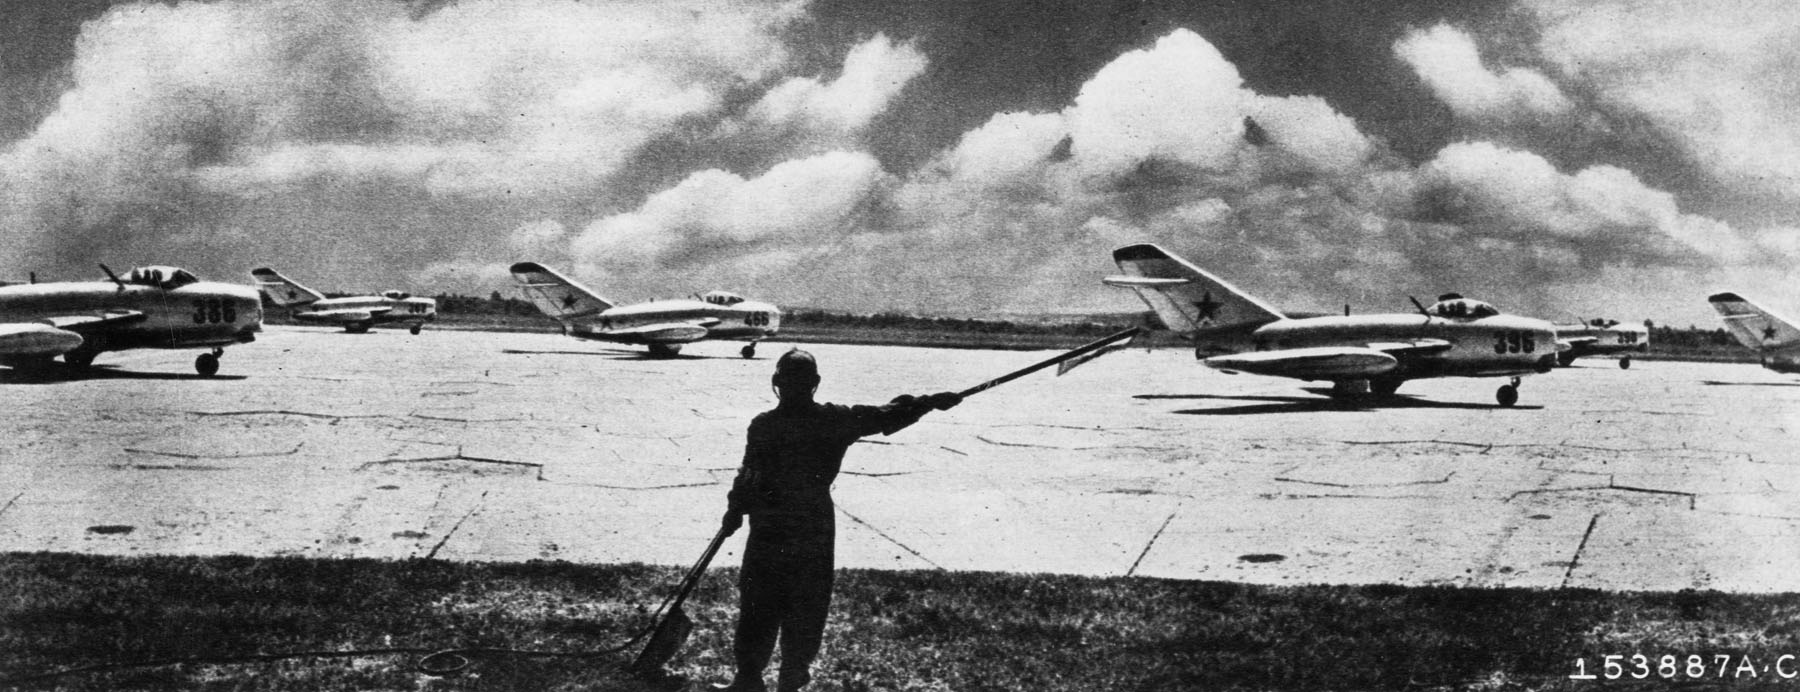 soviet-built-mig-15-jet-fighters-ready-for-takeoff_6876457693_o